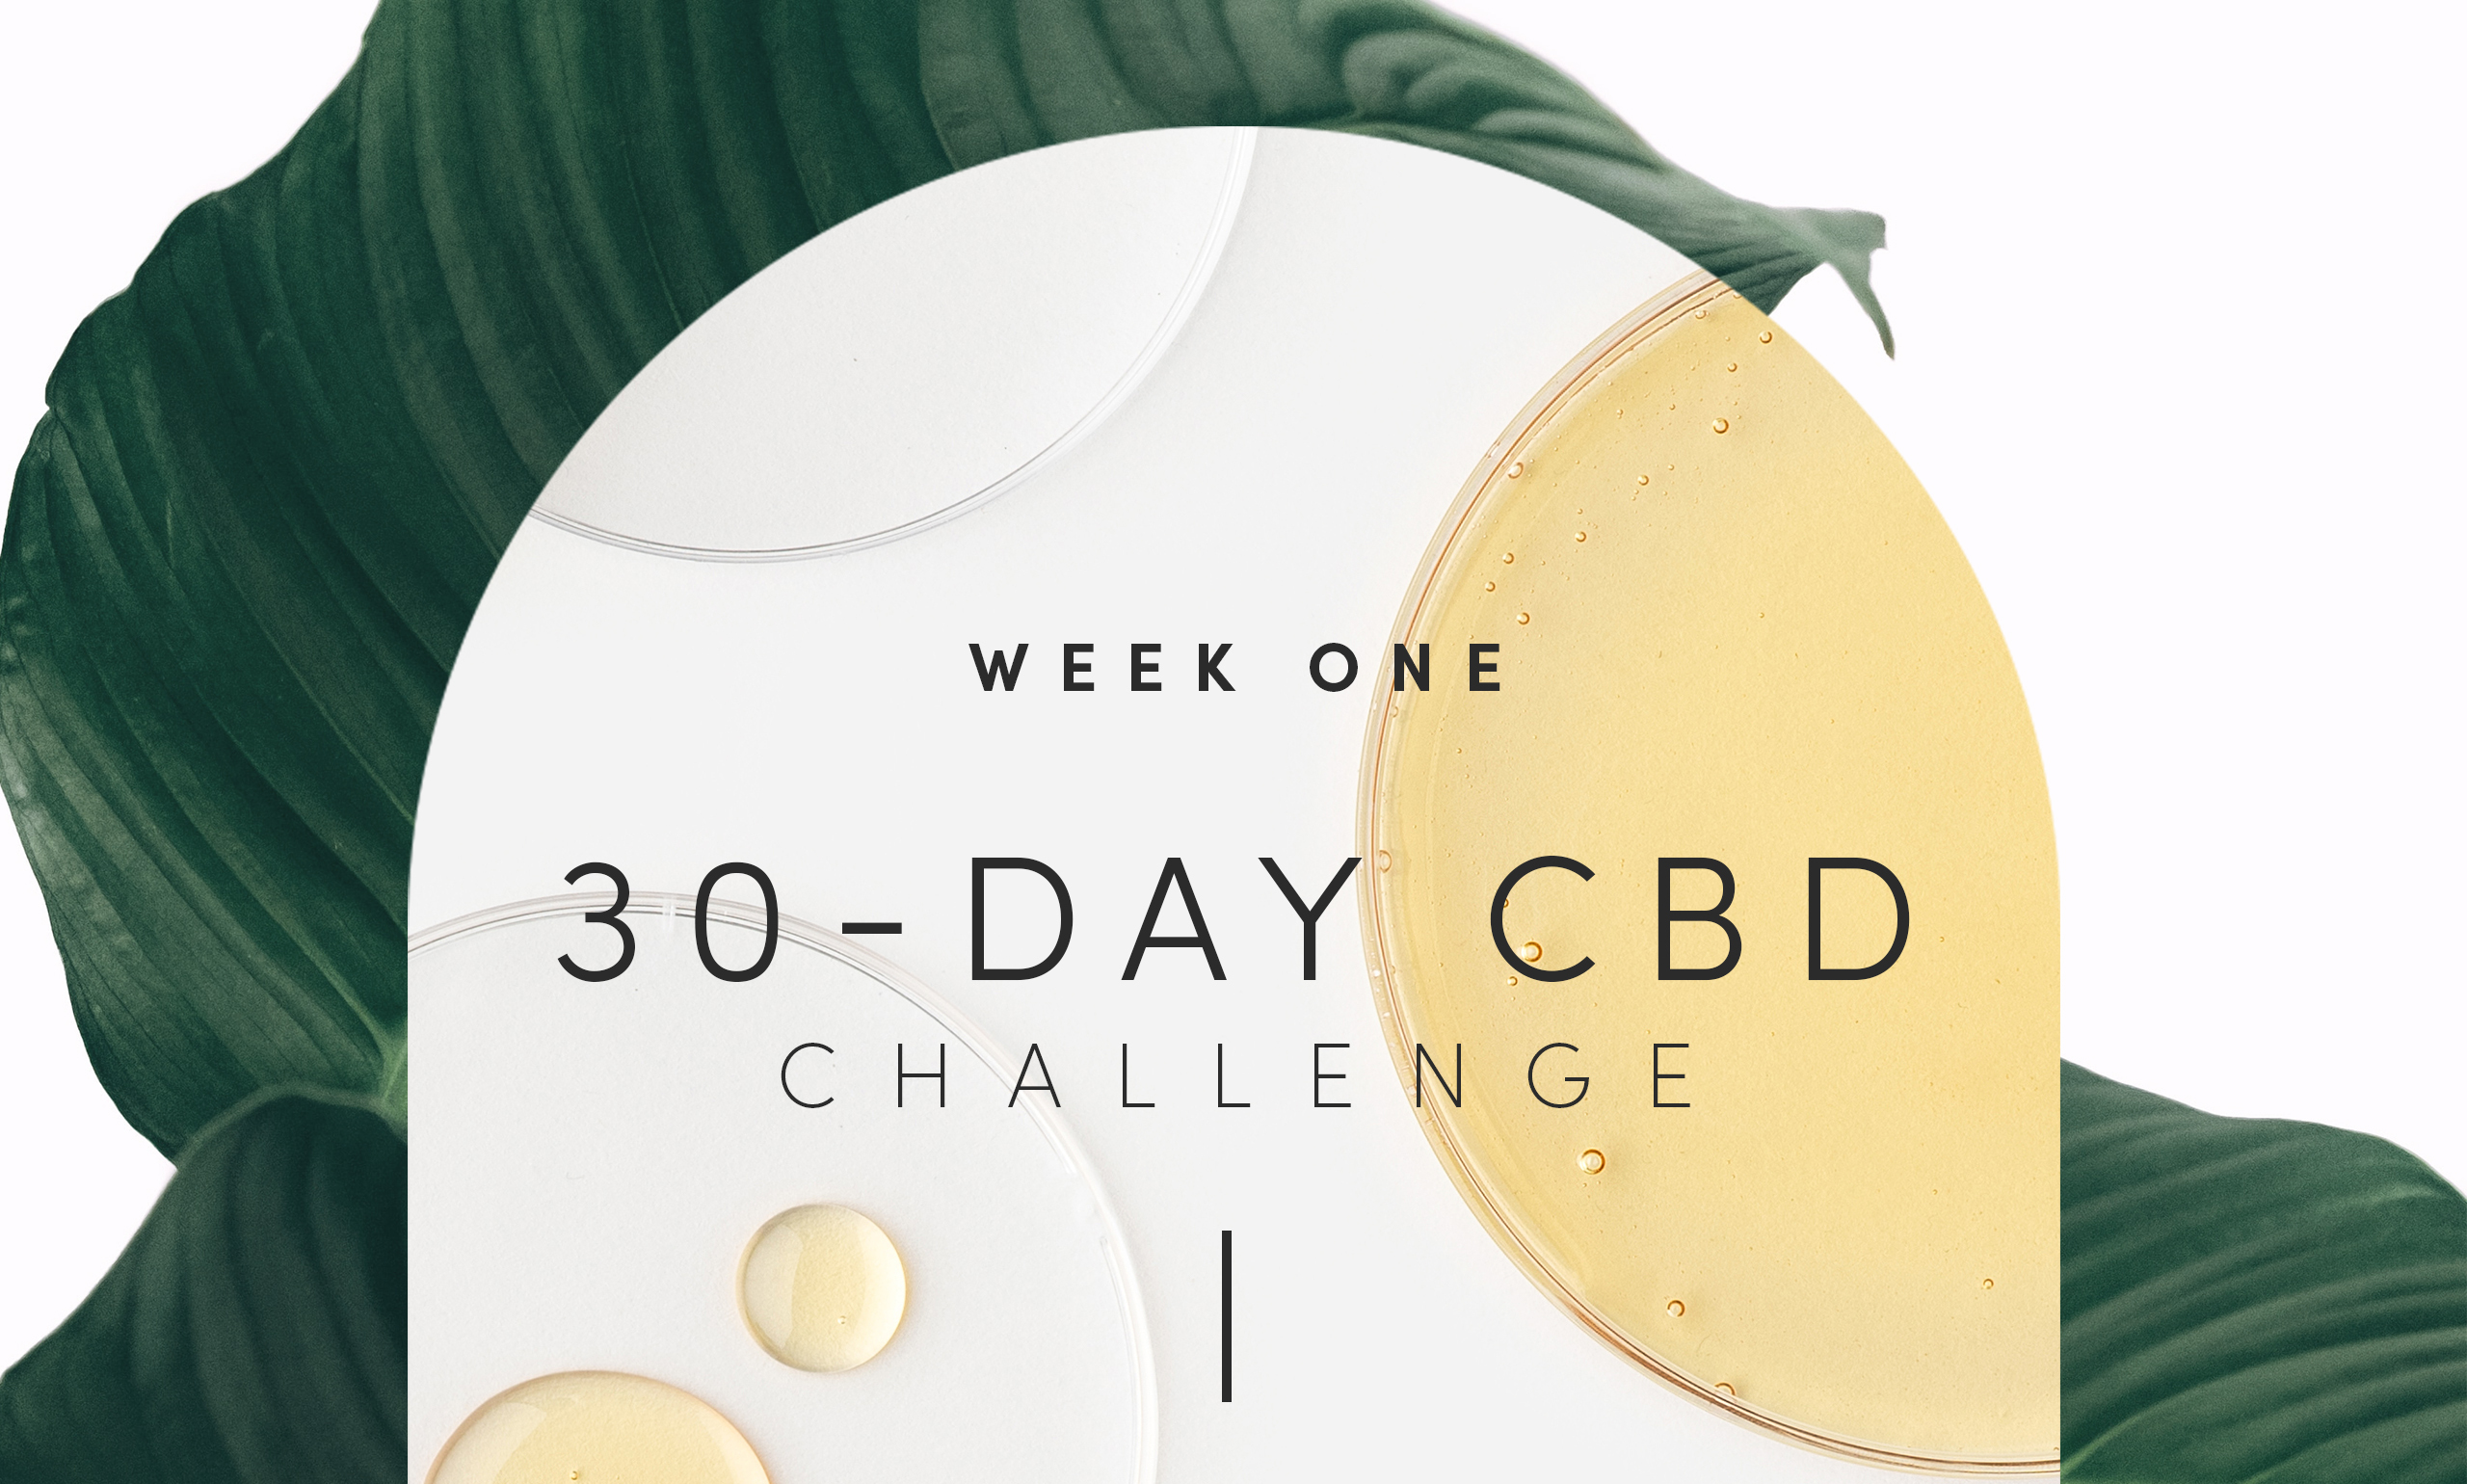 Week 1 Recap of Our 30-Day CBD Challenge